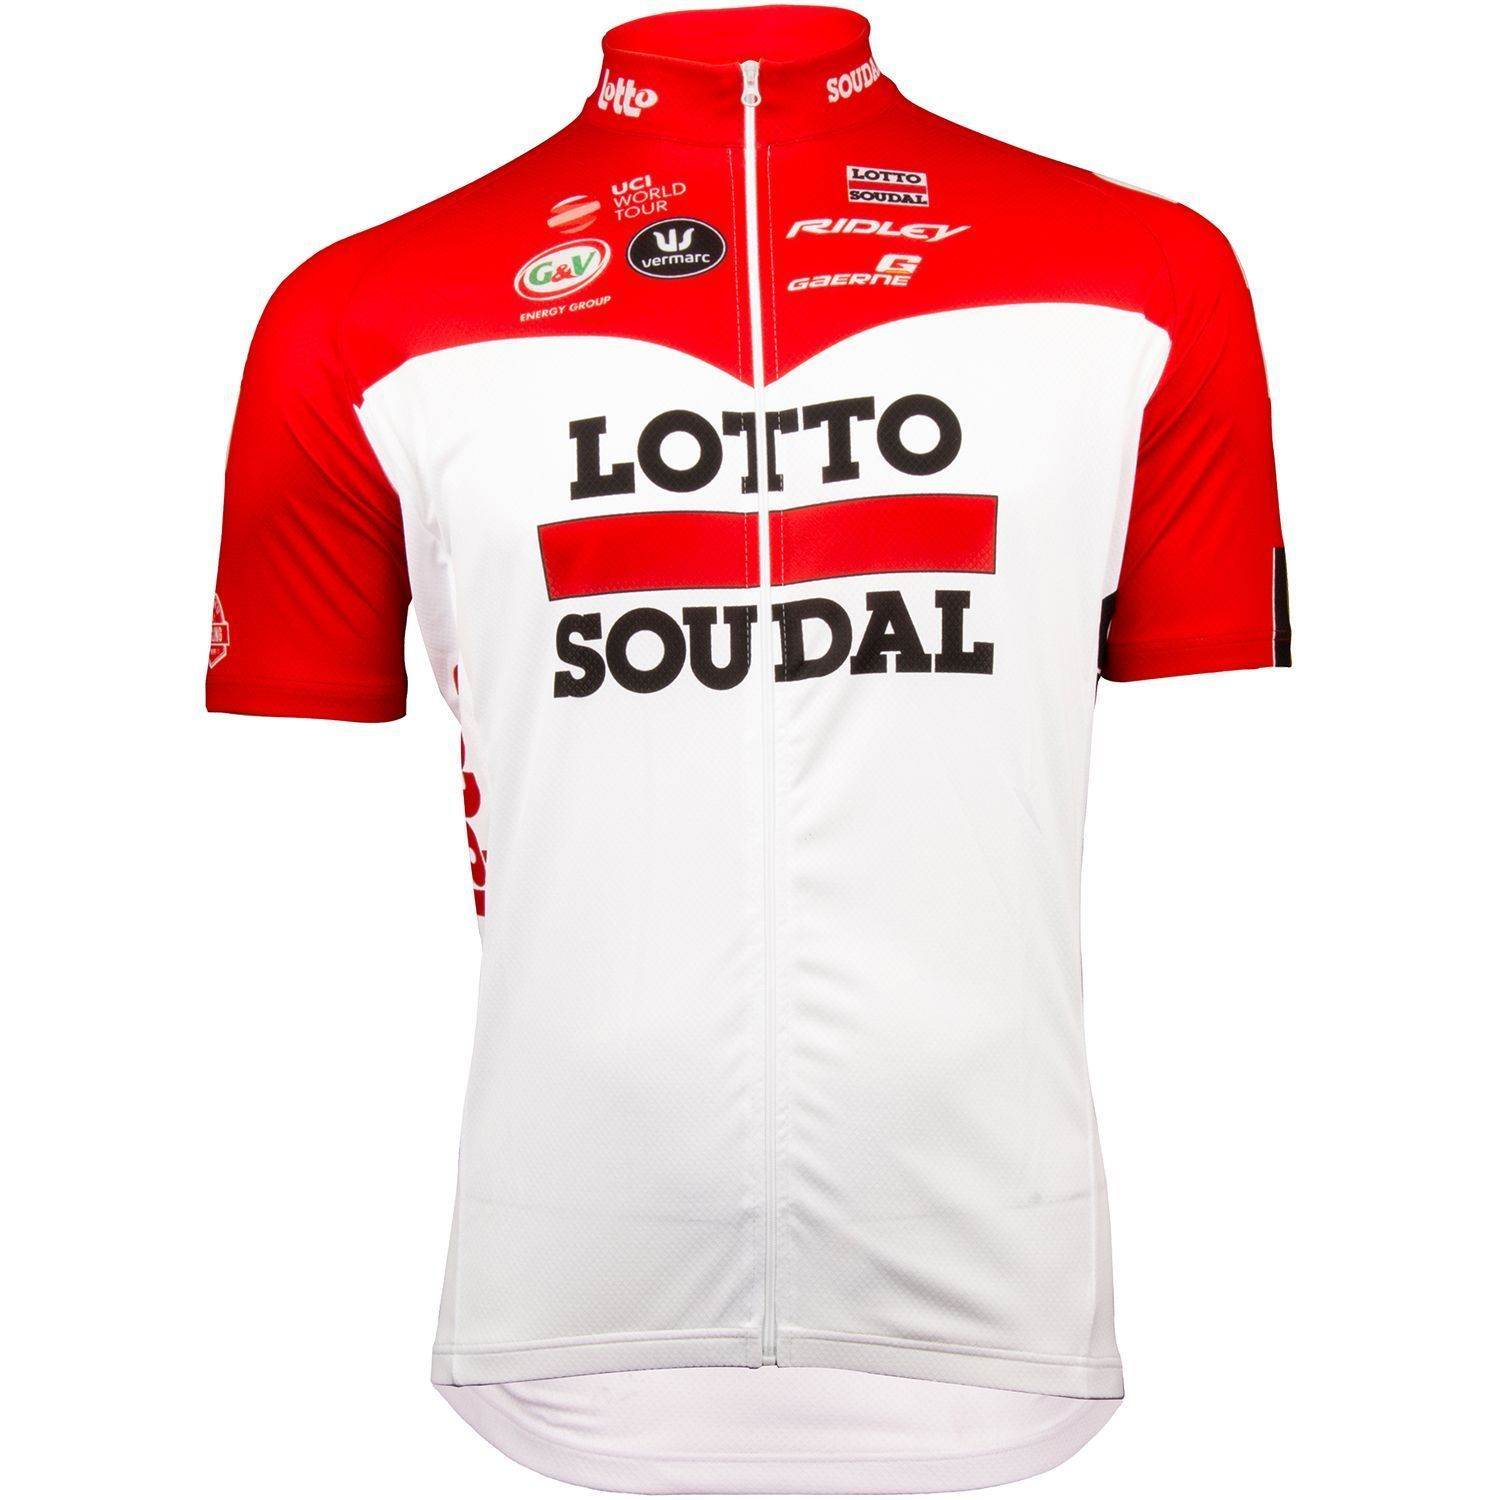 d7755fab6 ... short sleeve cycling jersey (long zip) - Vermarc professional cycling  team. Previous